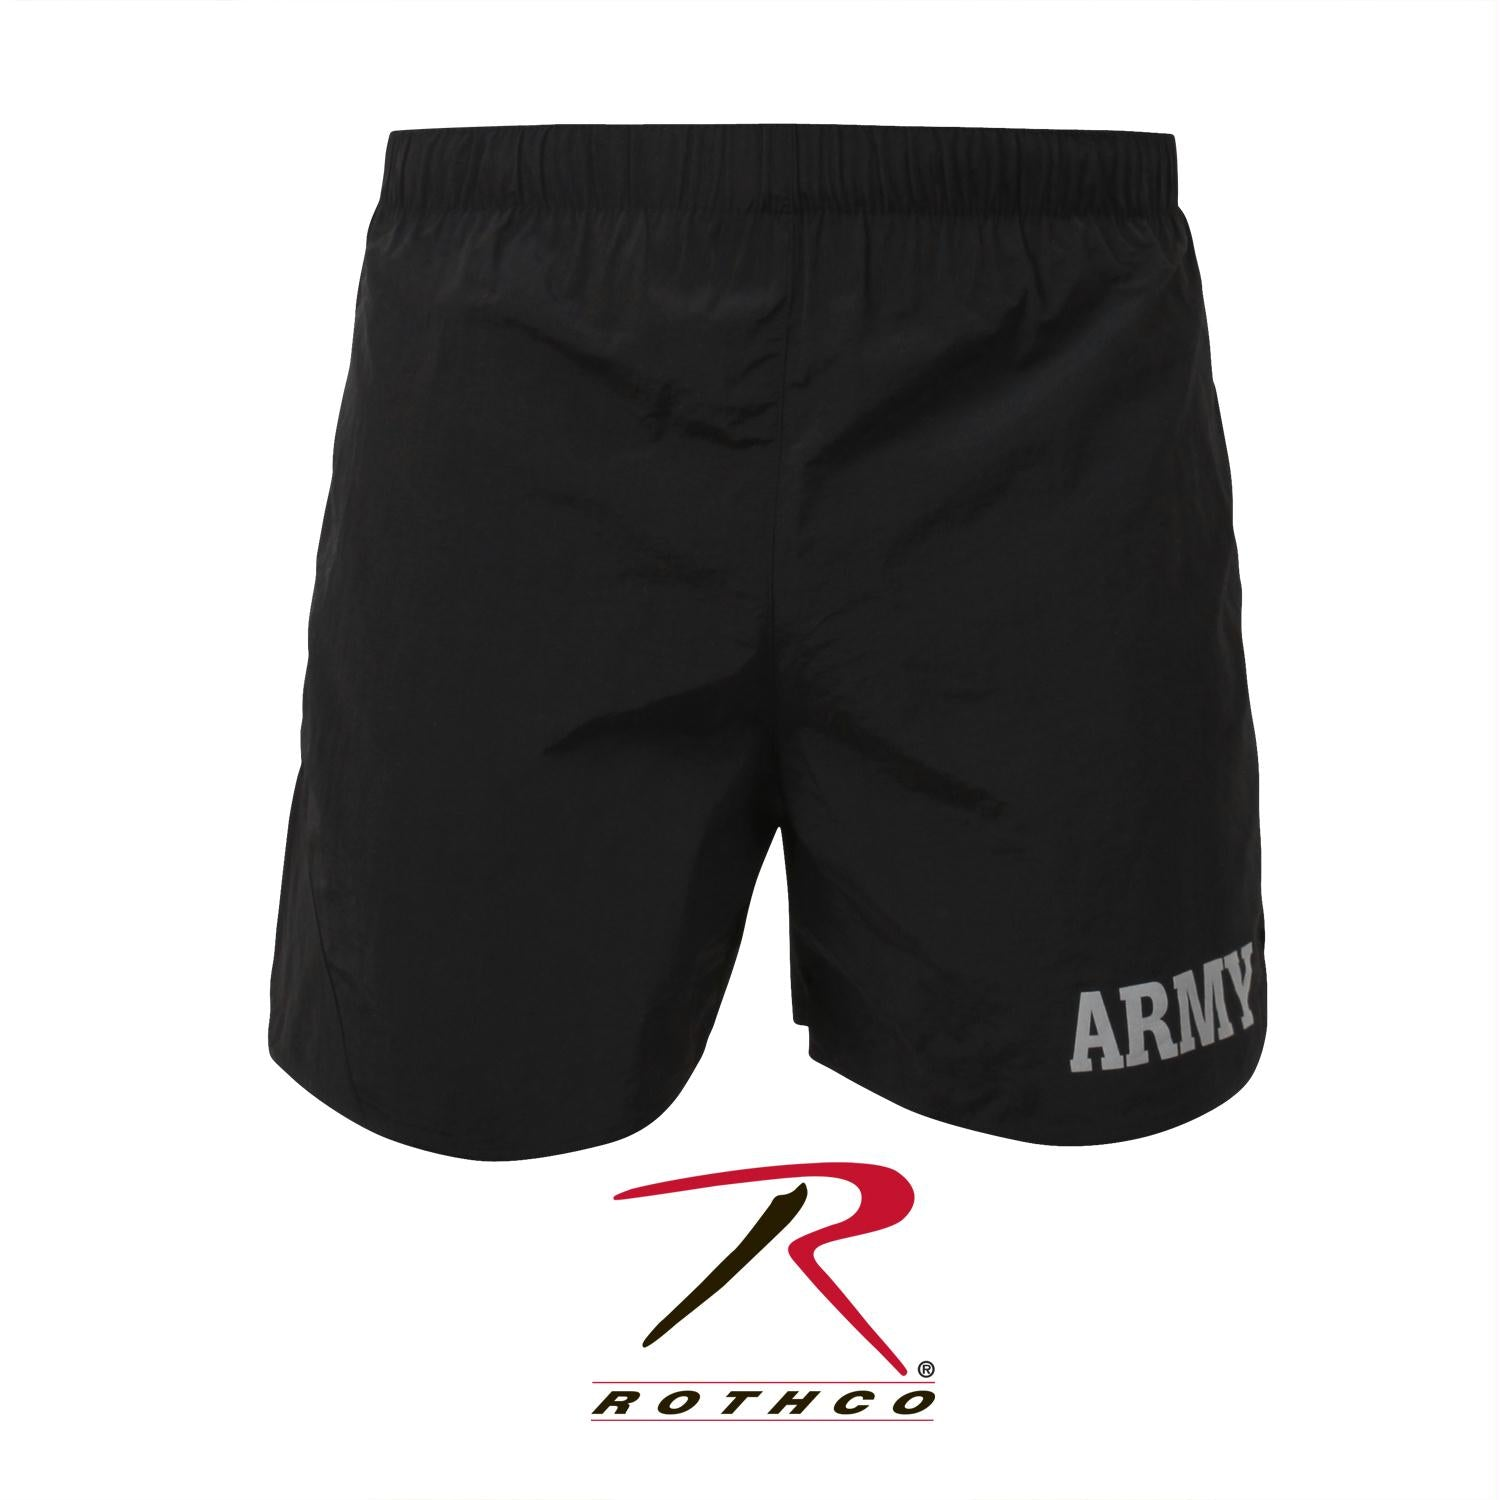 Rothco Physical Training  Shorts - Army / 2XL